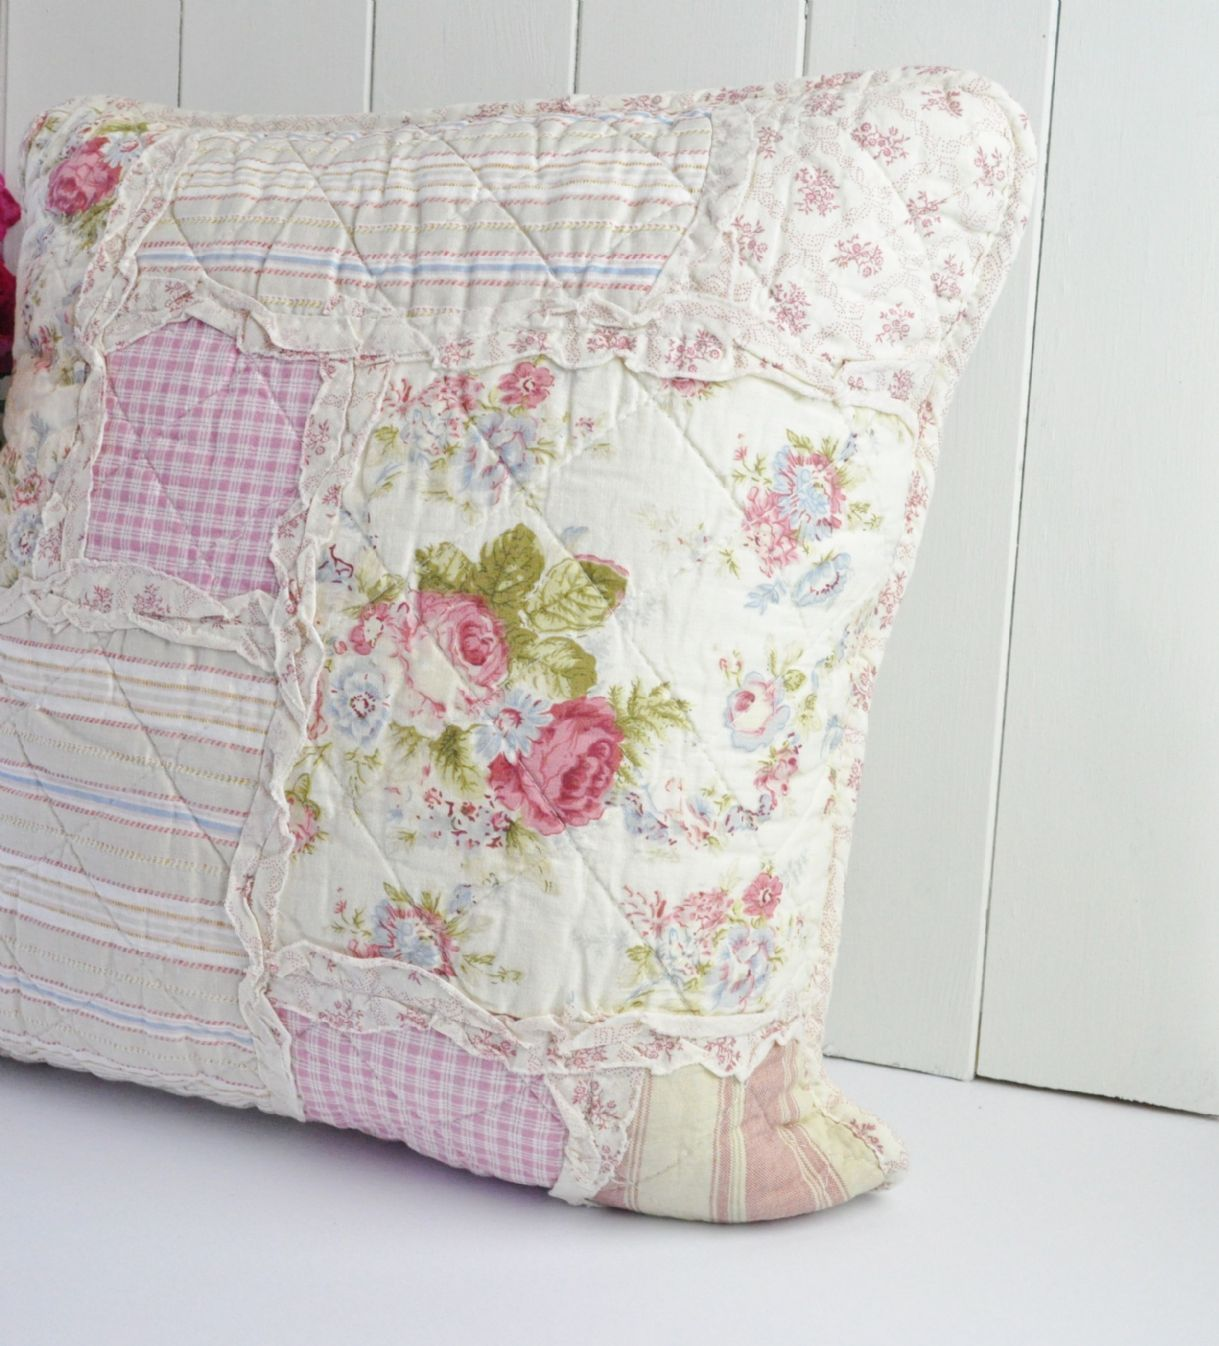 Shabby Chic Decorative Pillows : shabby chic clothes Shabby Chic Country Style Patchwork Cushion Cover things to sew ...